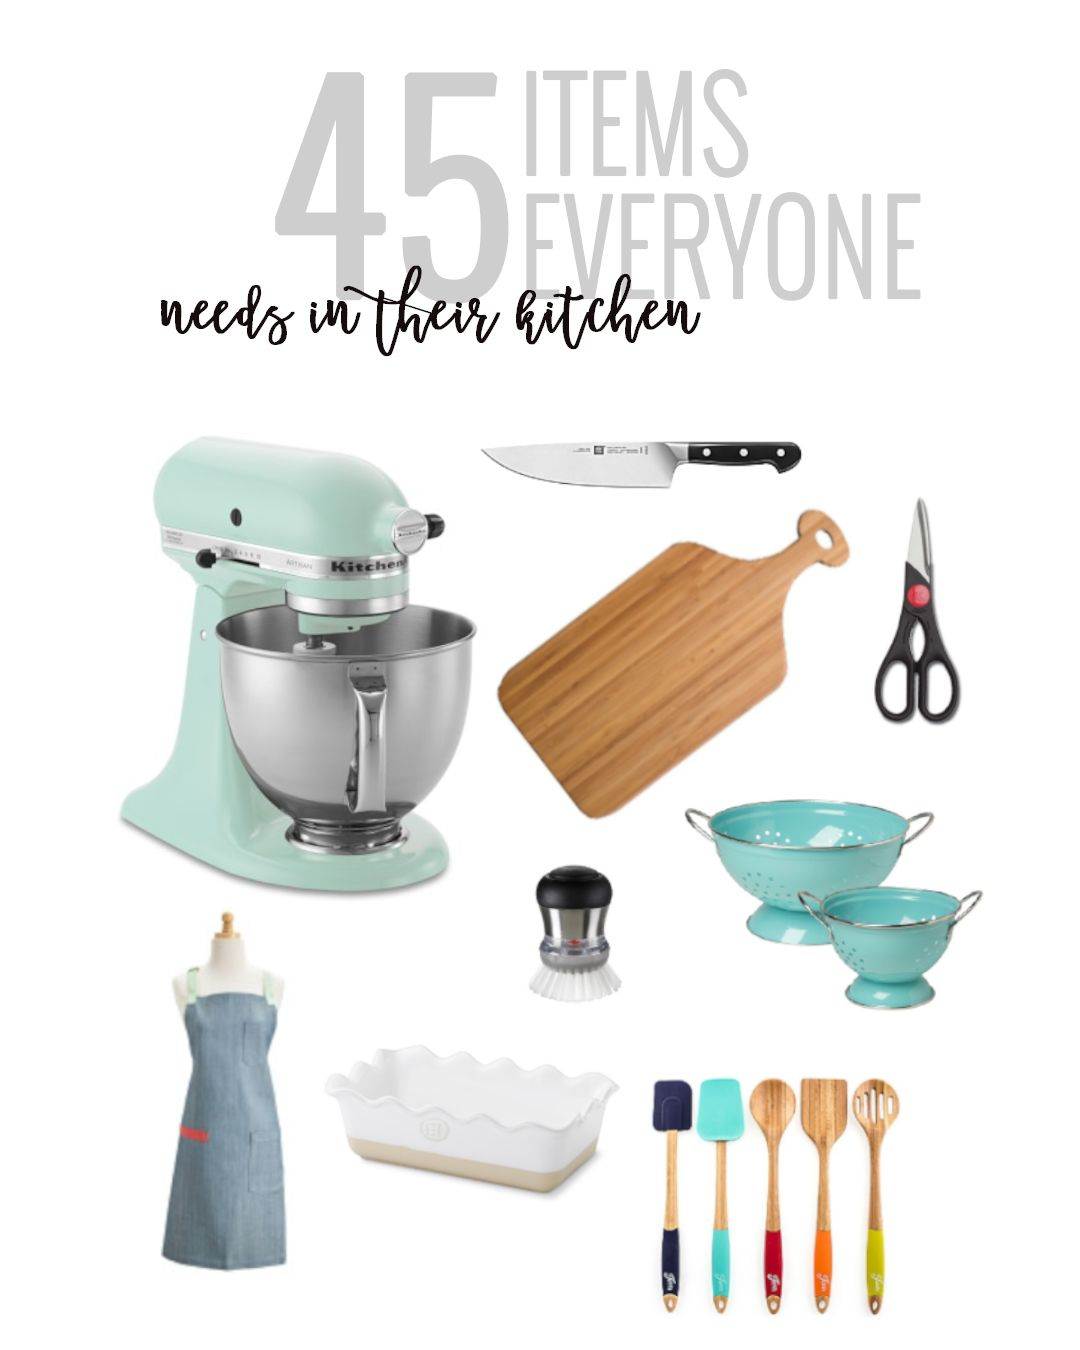 45 Items Everyone Needs In Their Kitchen is part of Kitchen essentials, Tuscan kitchen, Must have kitchen gadgets, Kitchen items, Outdoor kitchen appliances, Trendy kitchen - A complete list of all of the kitchen essentials you need! From small appliances, to gadgets, to linens  we have you covered